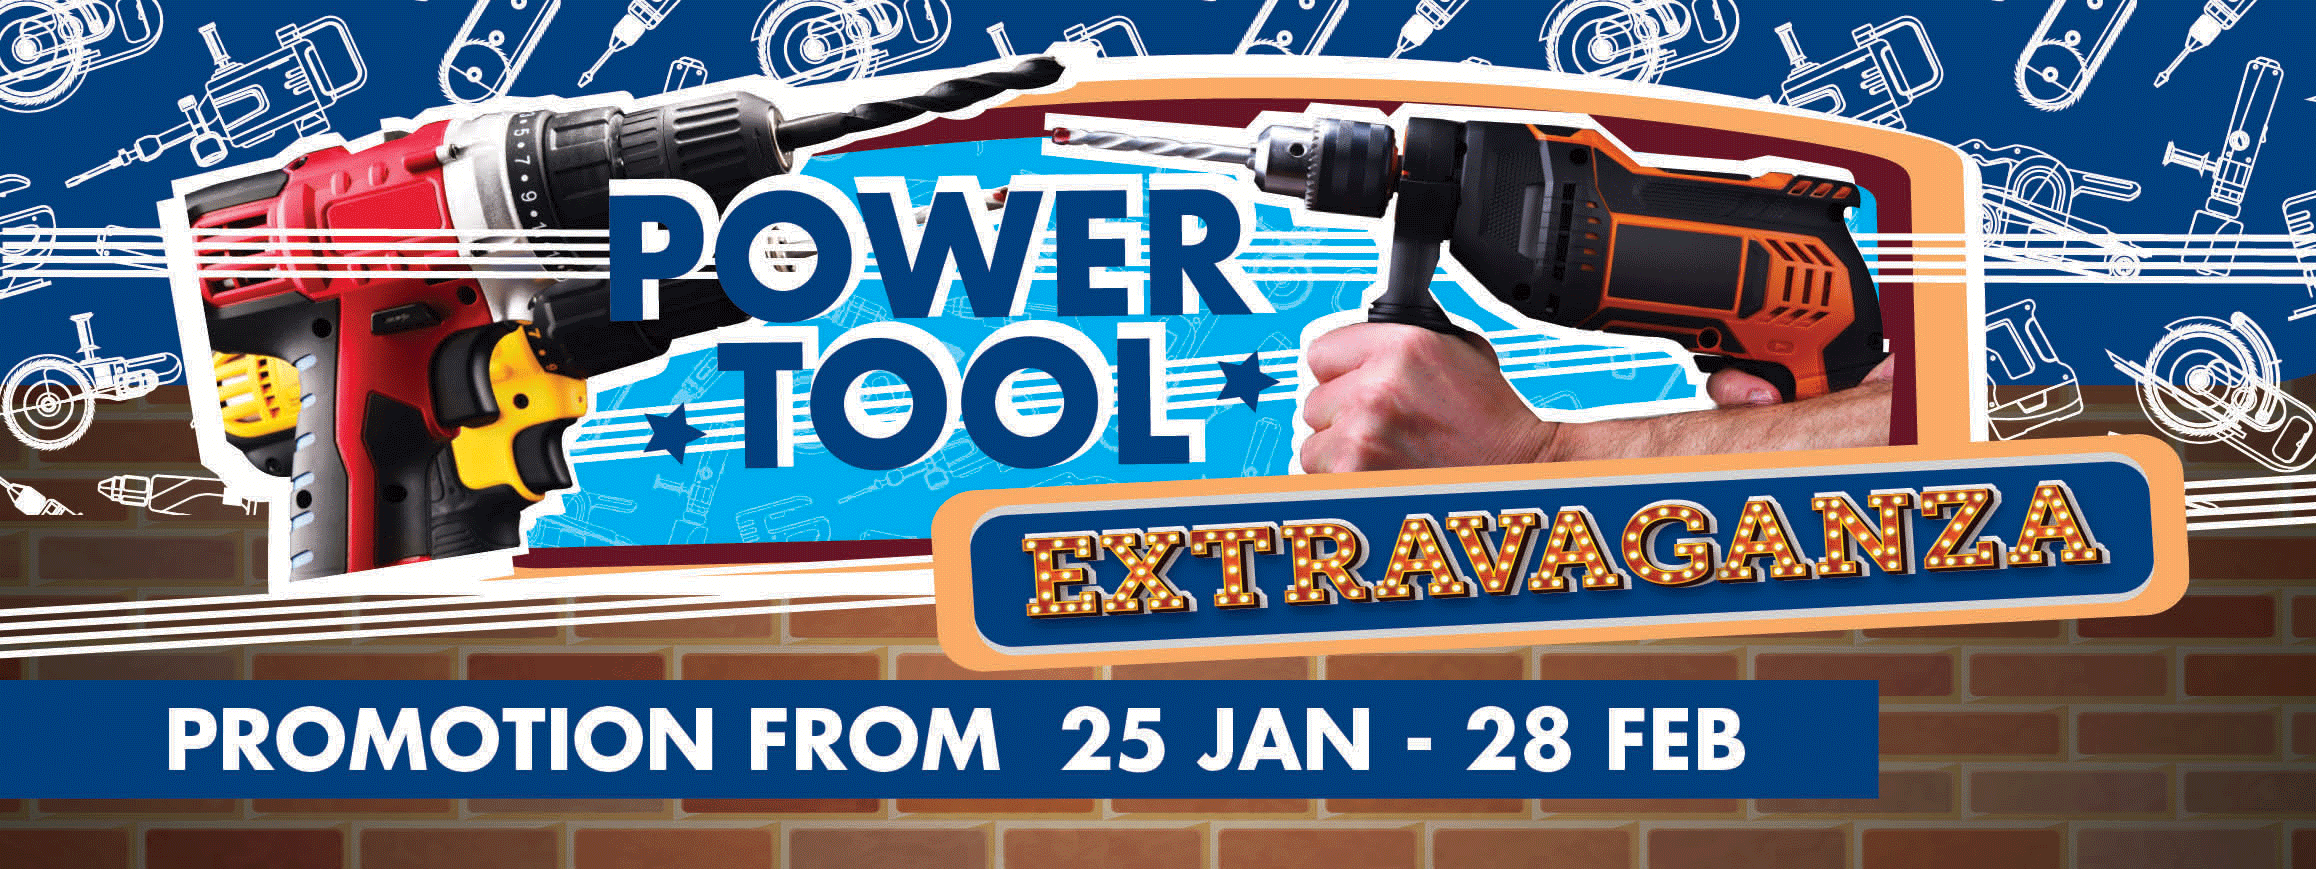 Power tools promotion from 25 Jan - 28 Feb